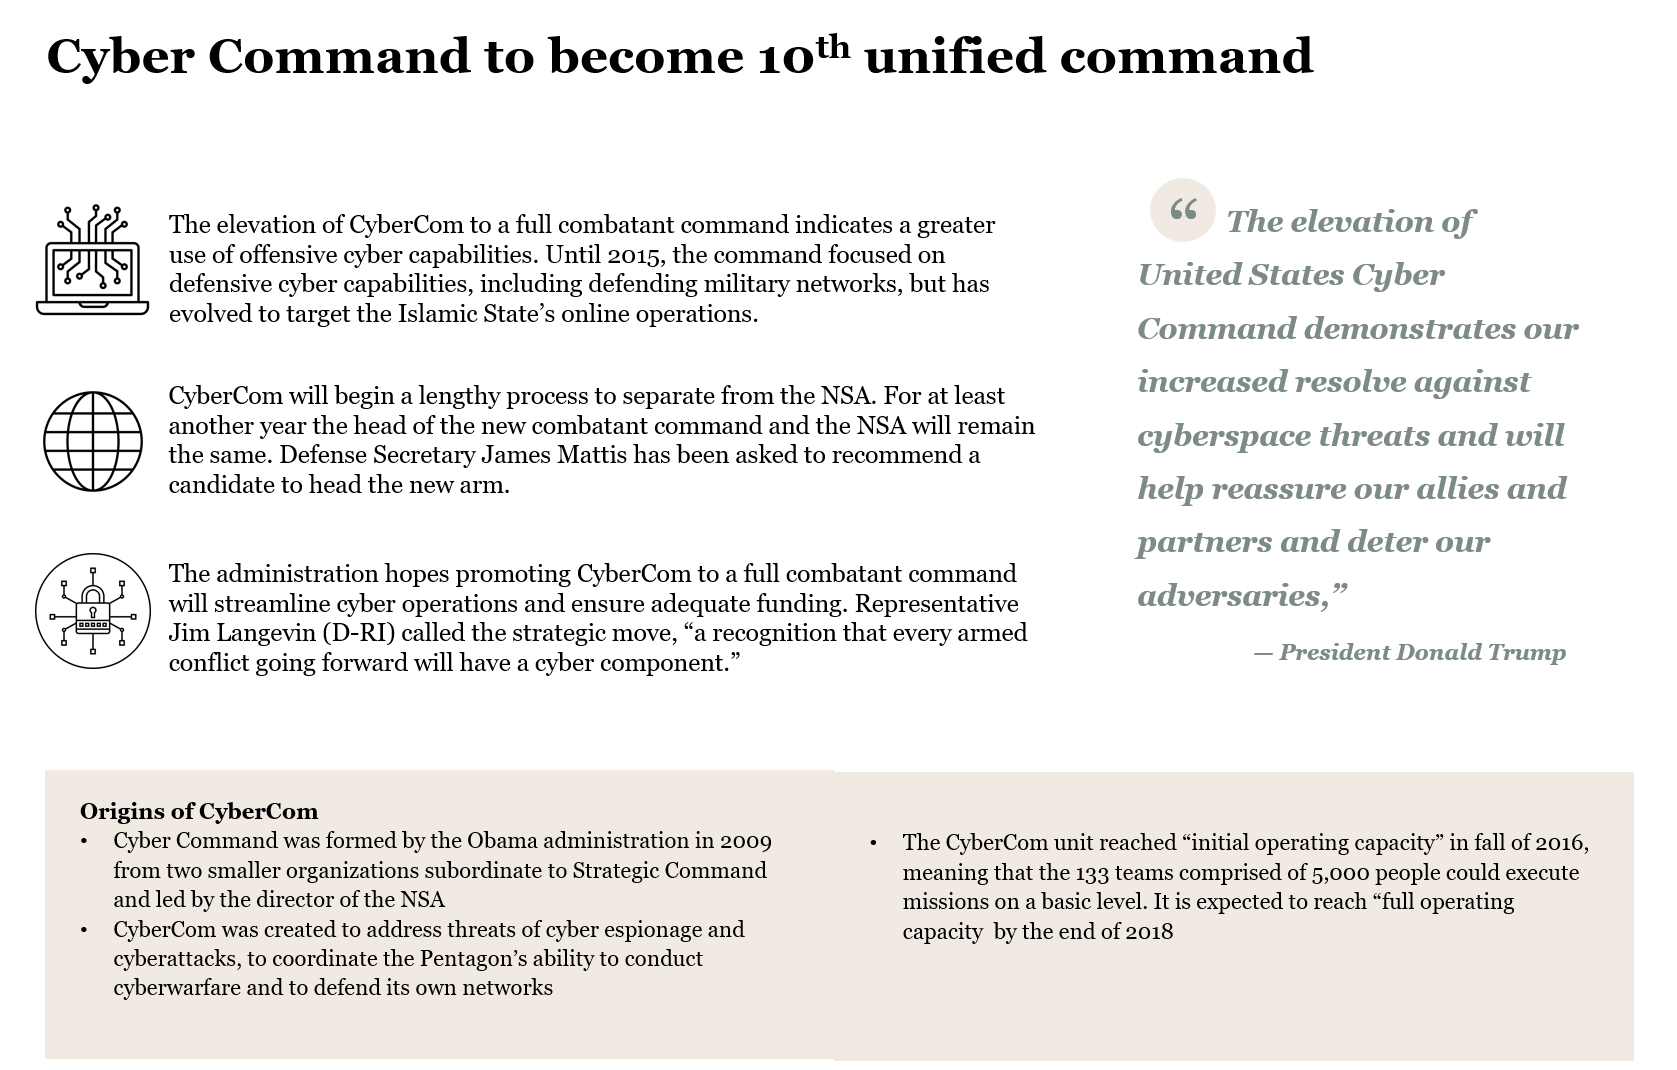 CyberbethunifiedcommandPNG - Elevation level by address